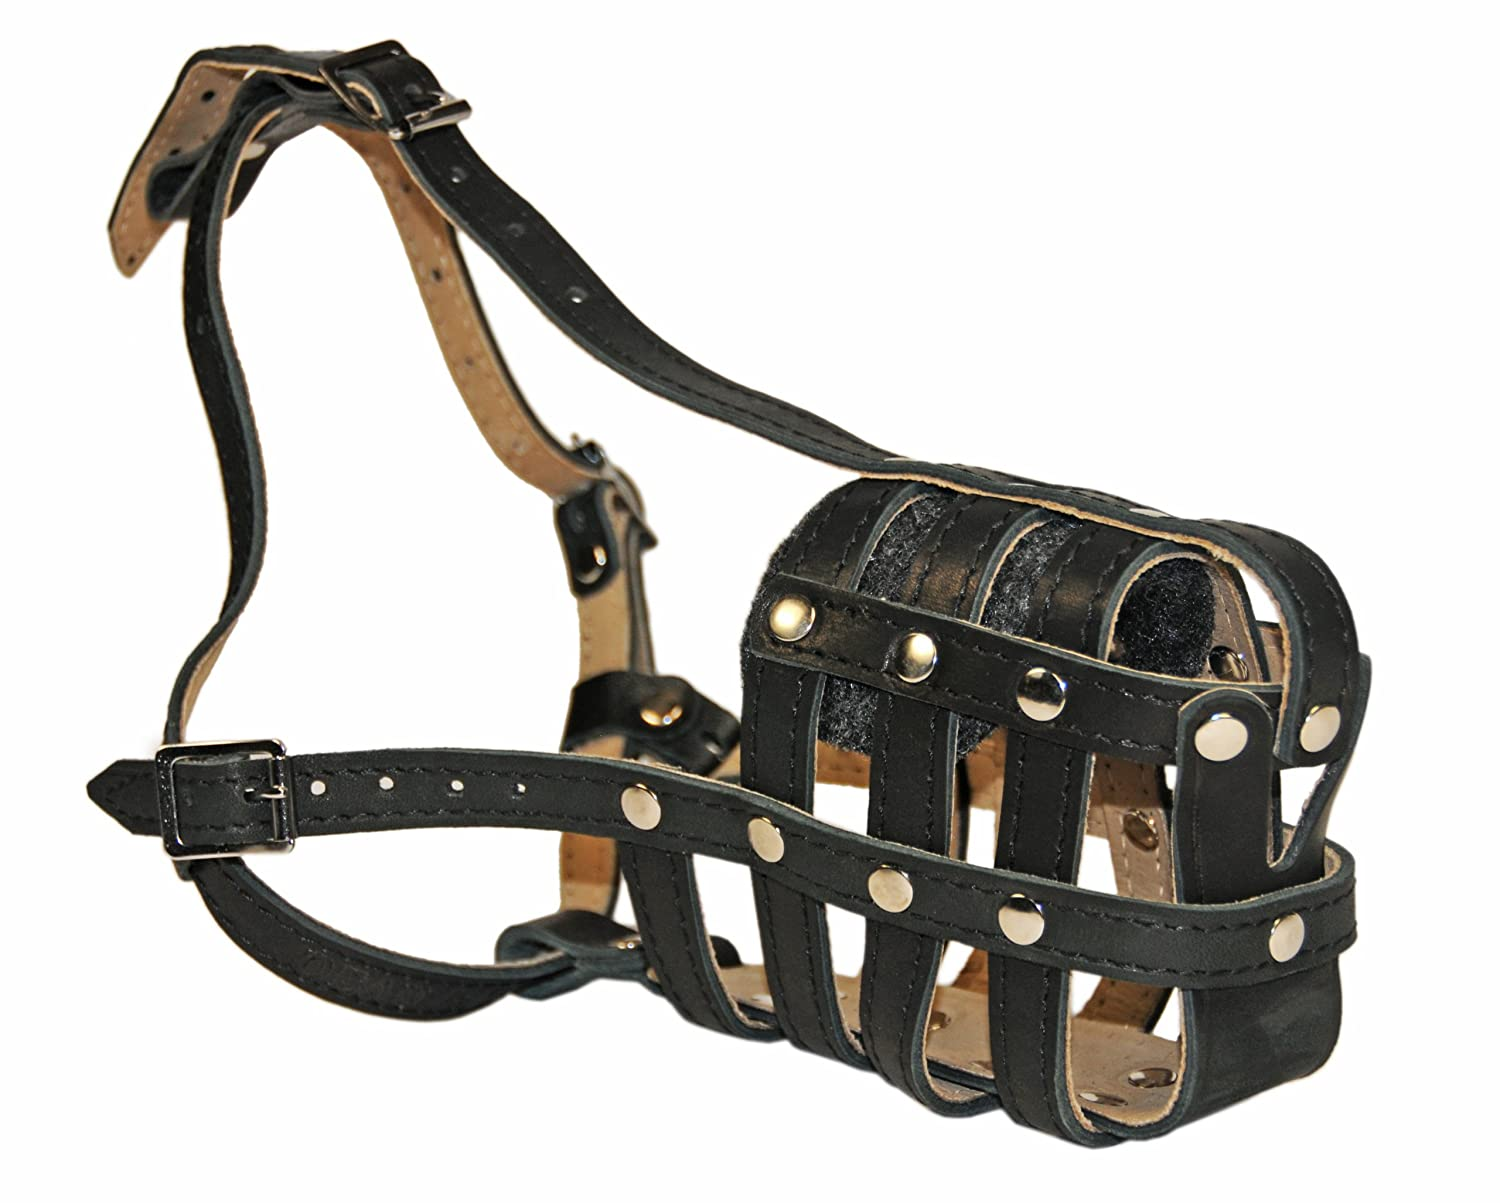 Dean & Tyler D & T M Royal LB bk-tn EB1 English Bulldog Royal Basket Leather Muzzle, ampio, nero Tan